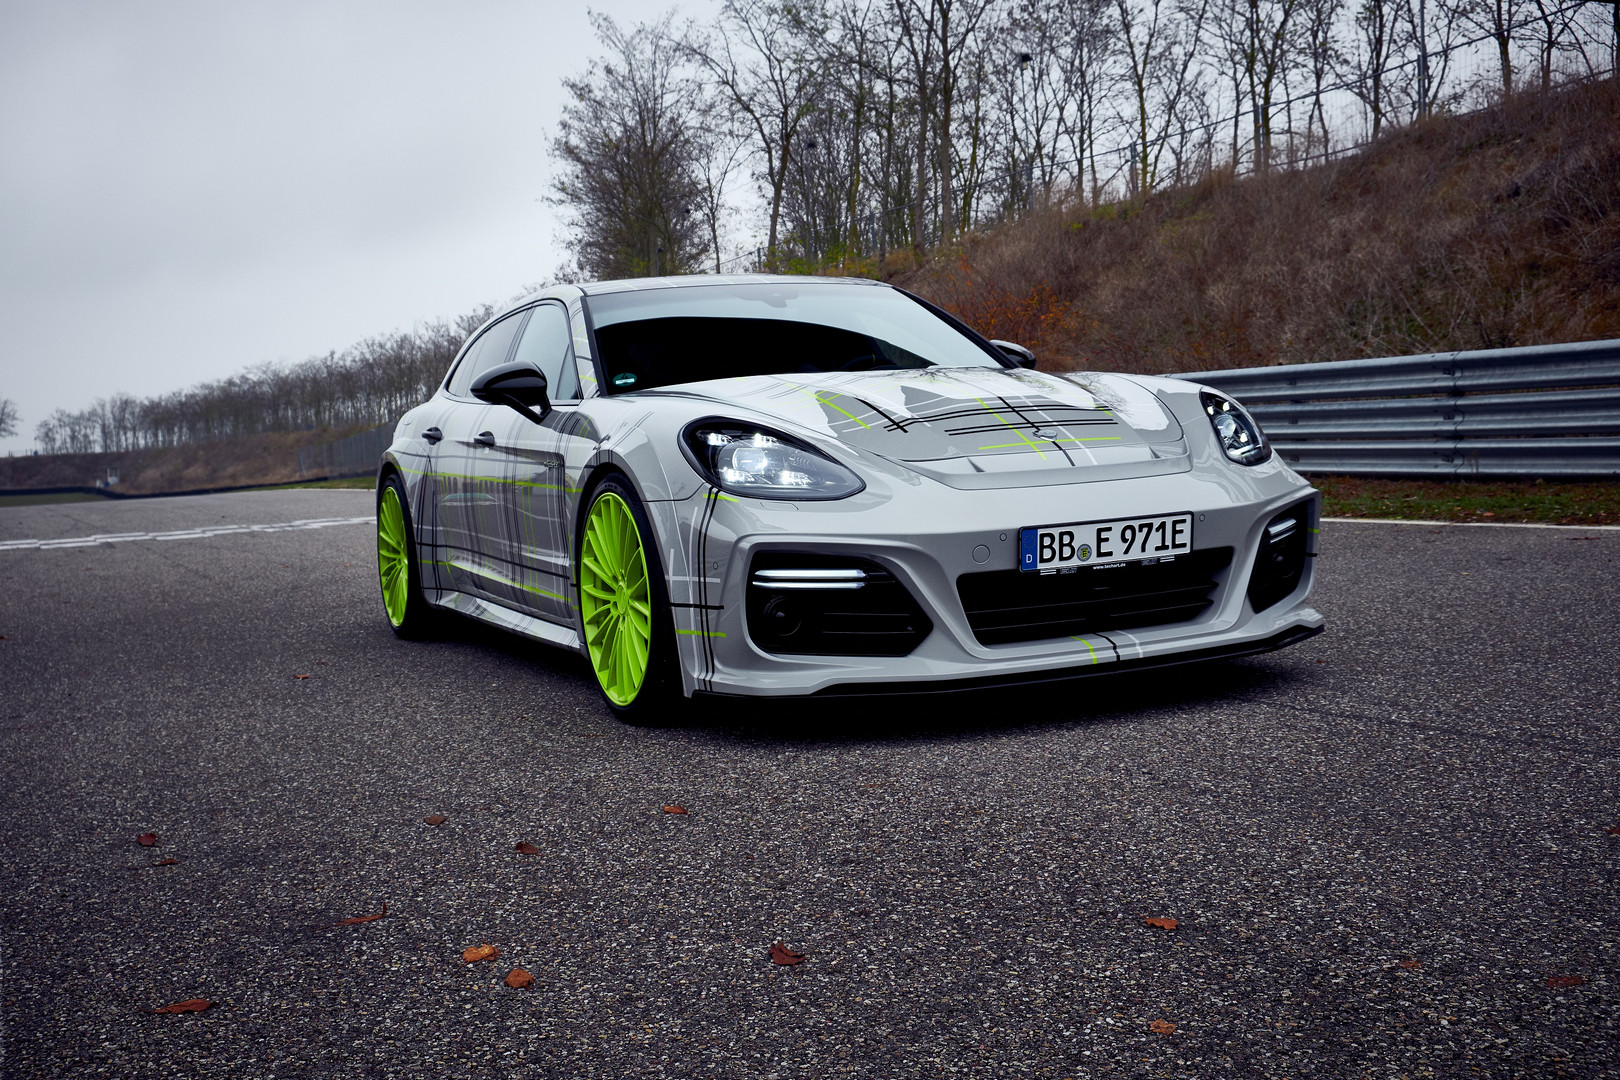 Techart Porsche Panamera Turbo S E Hybrid